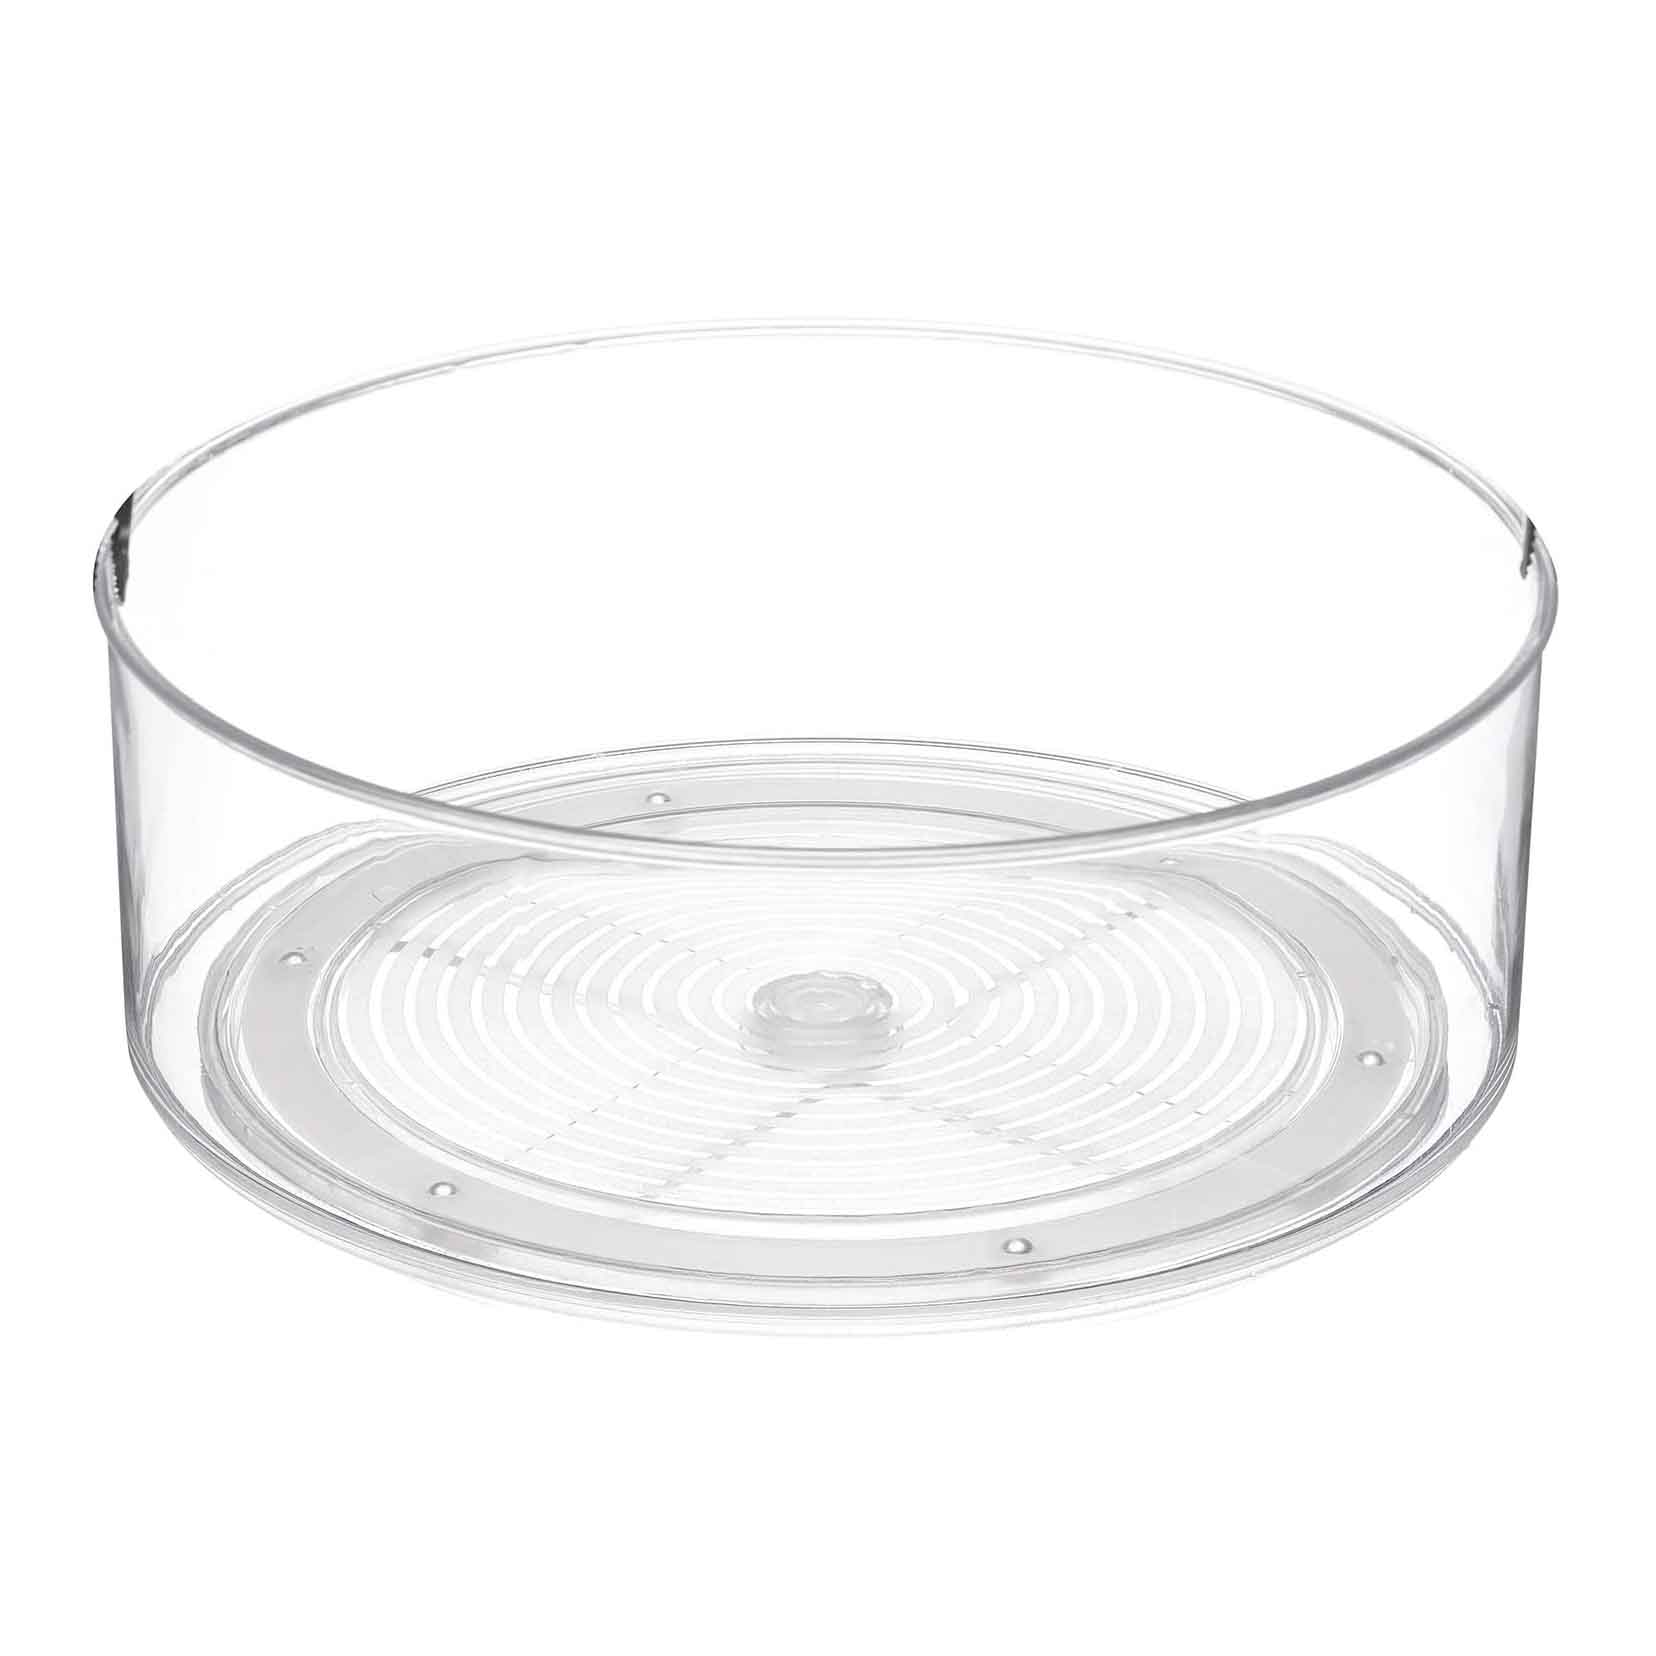 Home Intuition Round Plastic Lazy Susan Turntable